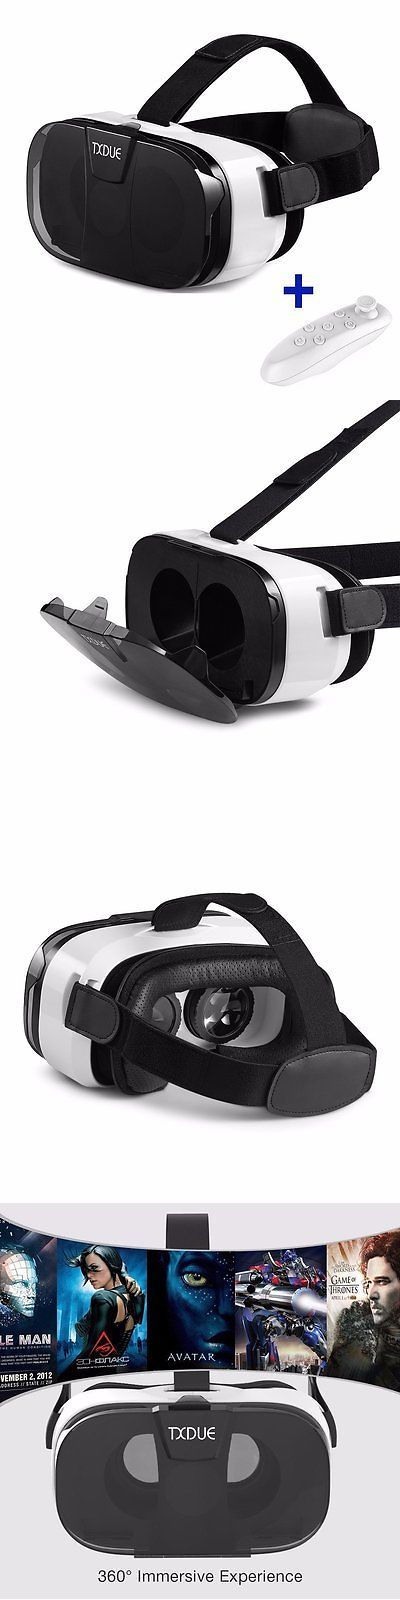 3D TV Glasses and Accessories: 3D Vr Headset, Txdue Virtual Reality Goggles With Bluetooth Remote Controller, BUY IT NOW ONLY: $32.02